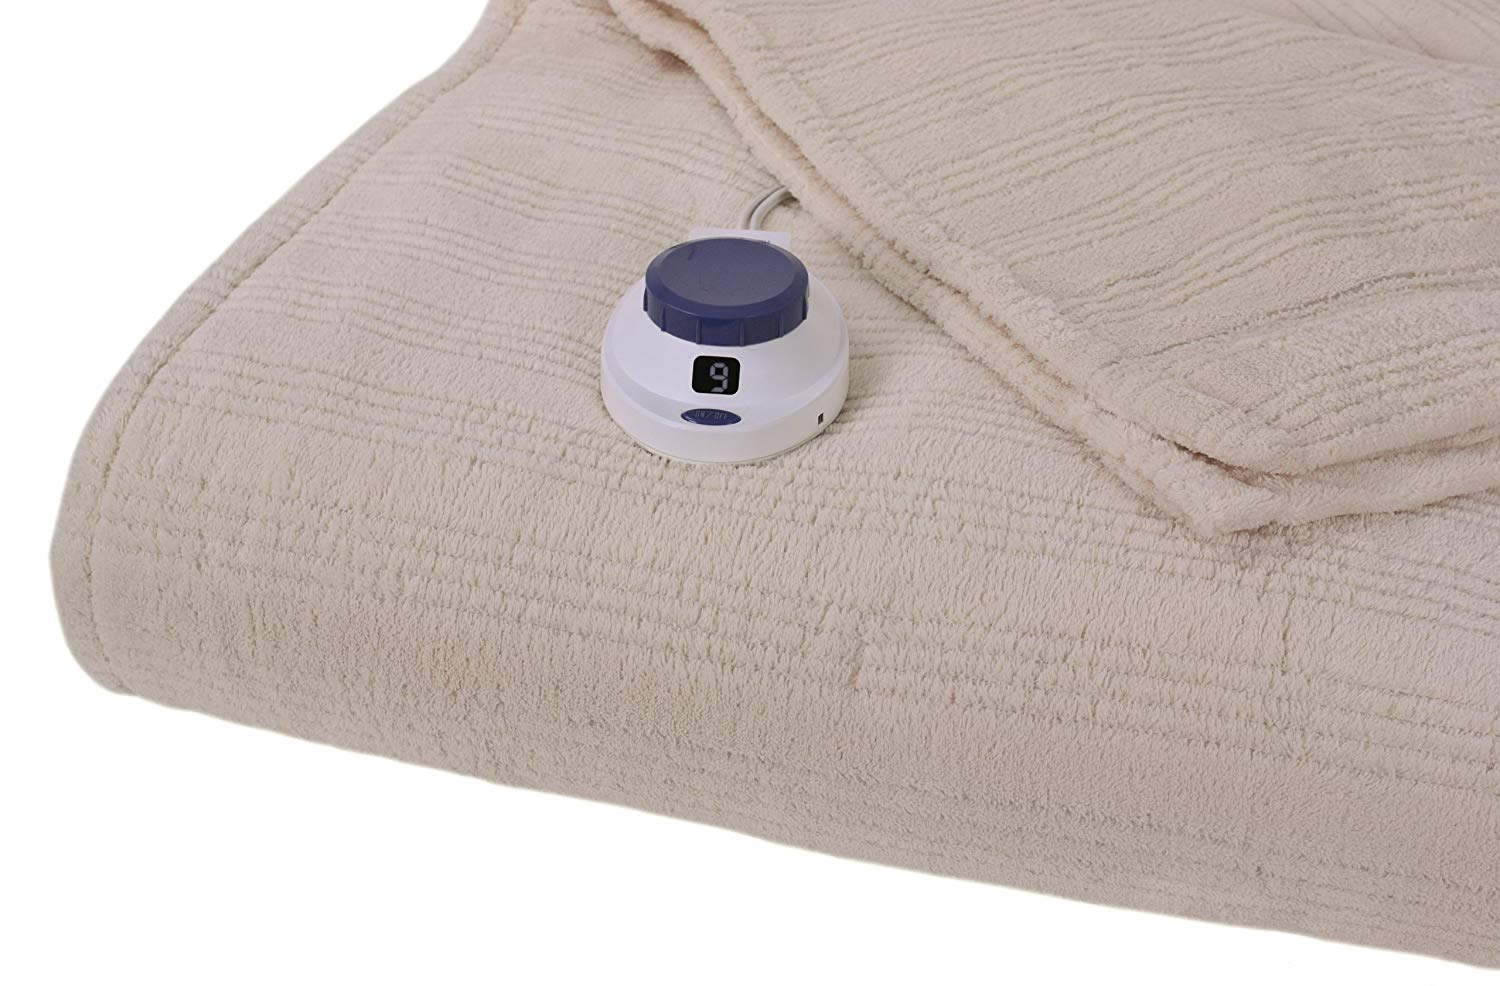 Serta Best Electric Blanket Review by www.snoremagazine.com